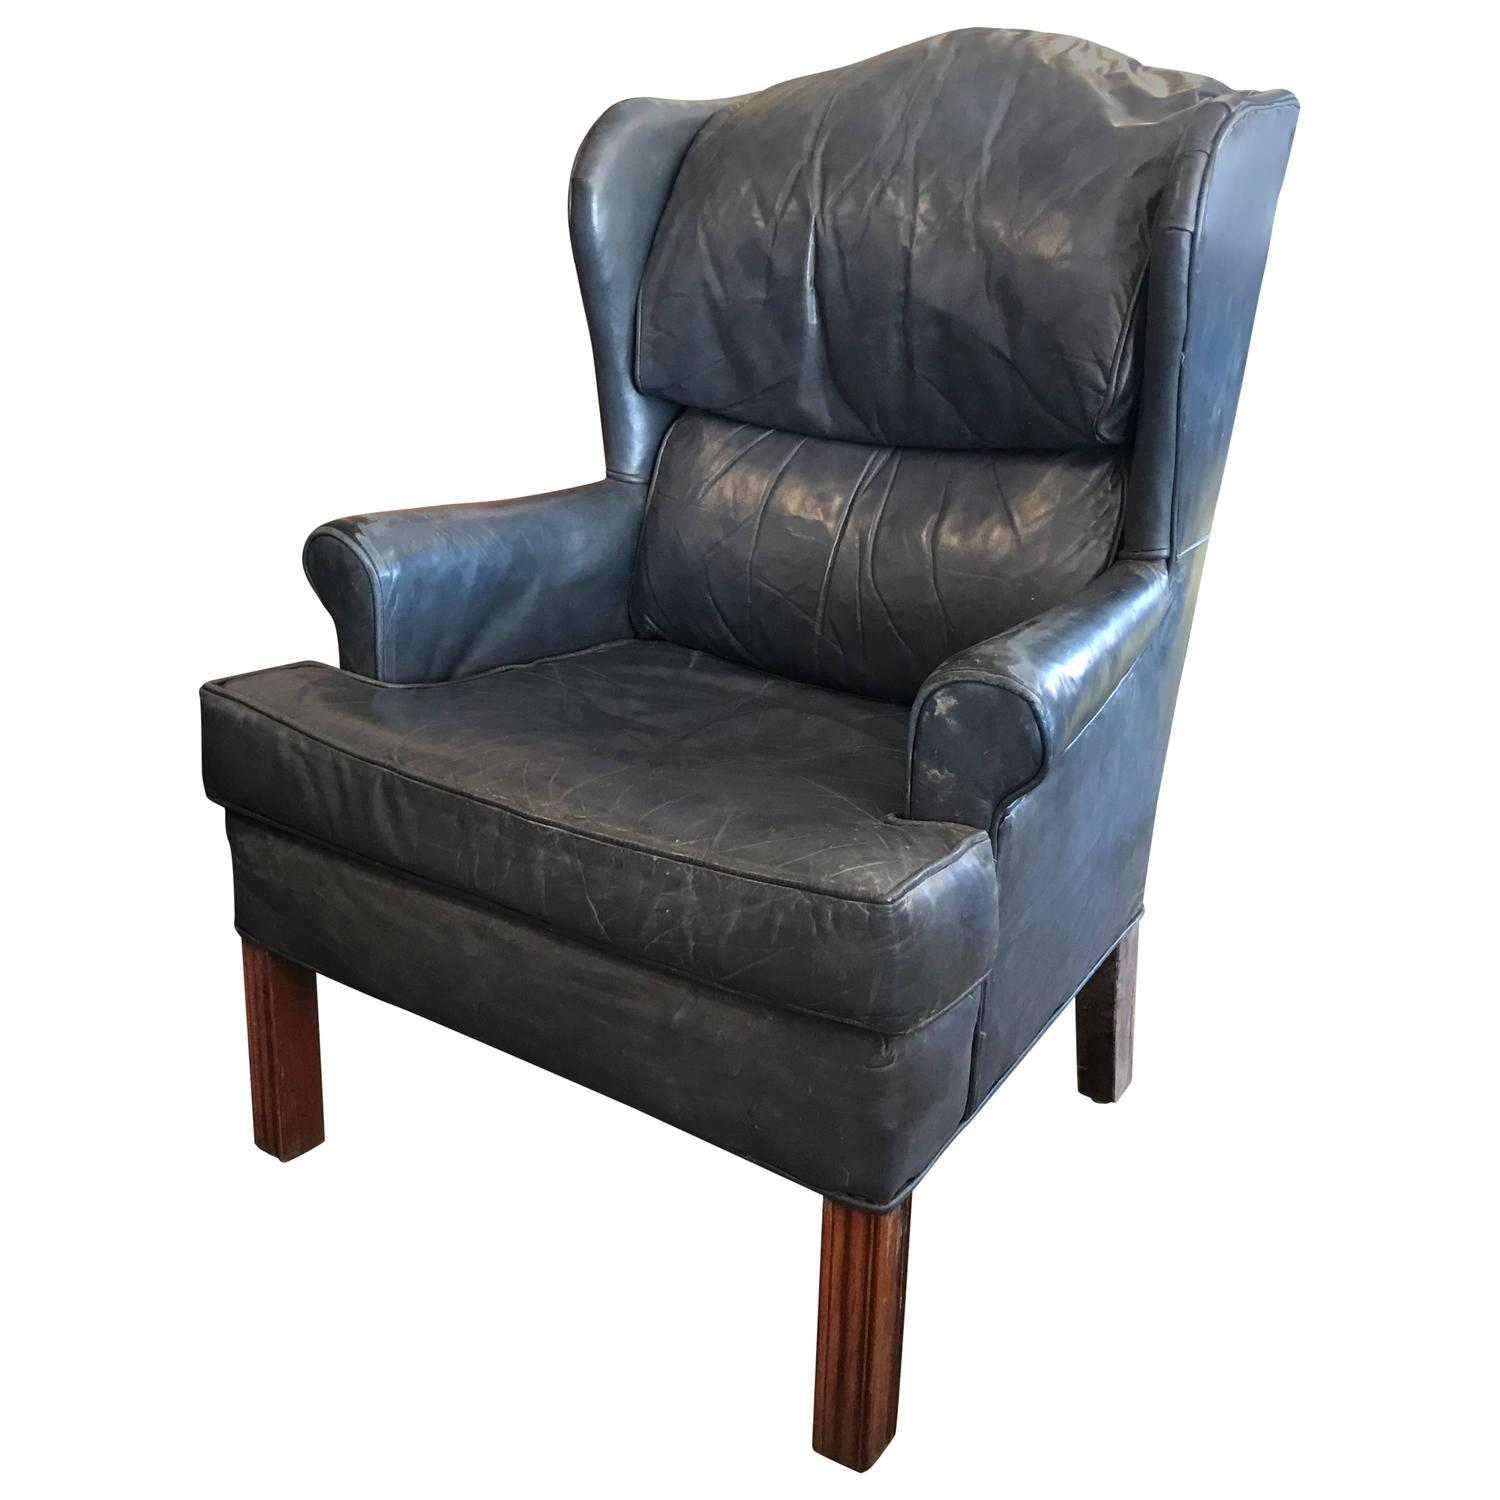 Vintage leather wingback lounge chair for sale at 1stdibs for Leather wingback recliner sale